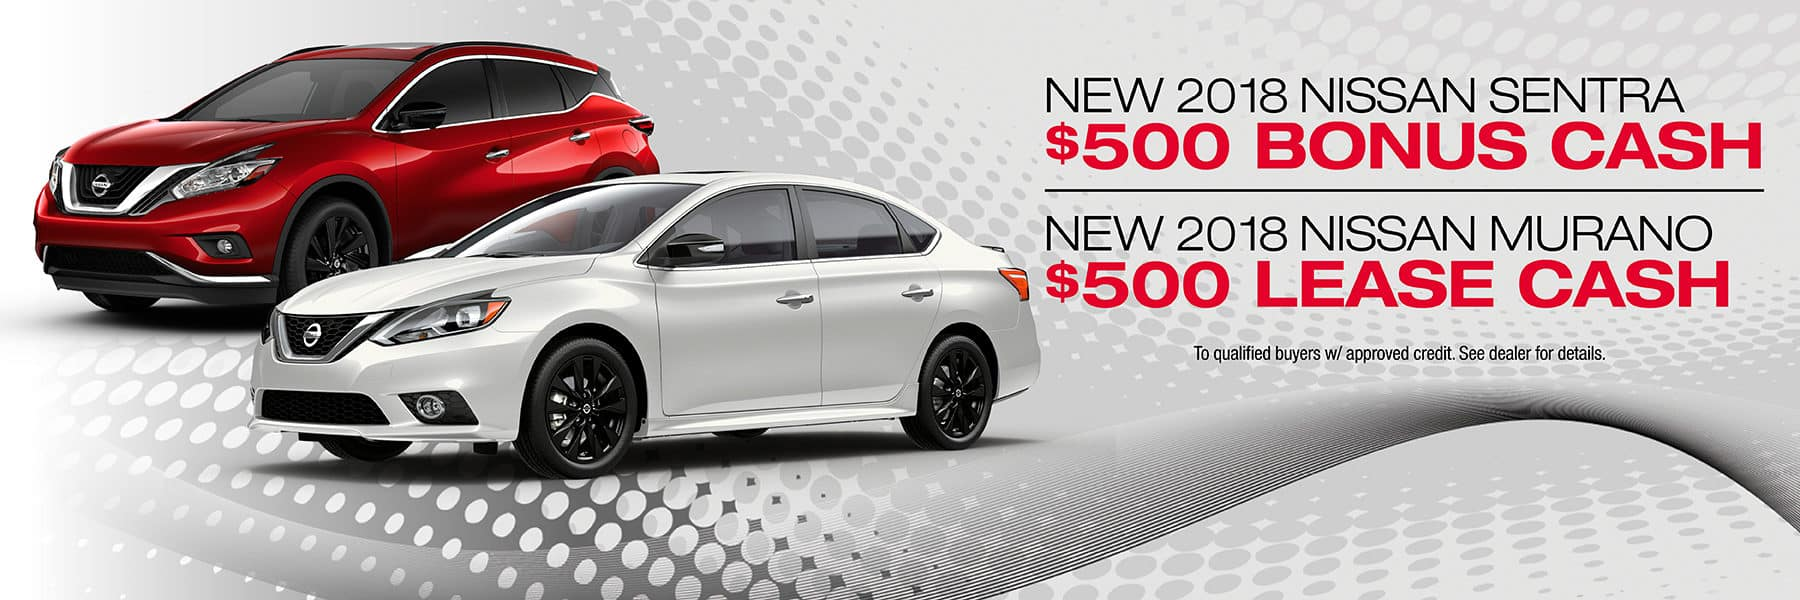 $500 Bonus Cash Available on Sentra and Murano at Berman Nissan of Chicago!